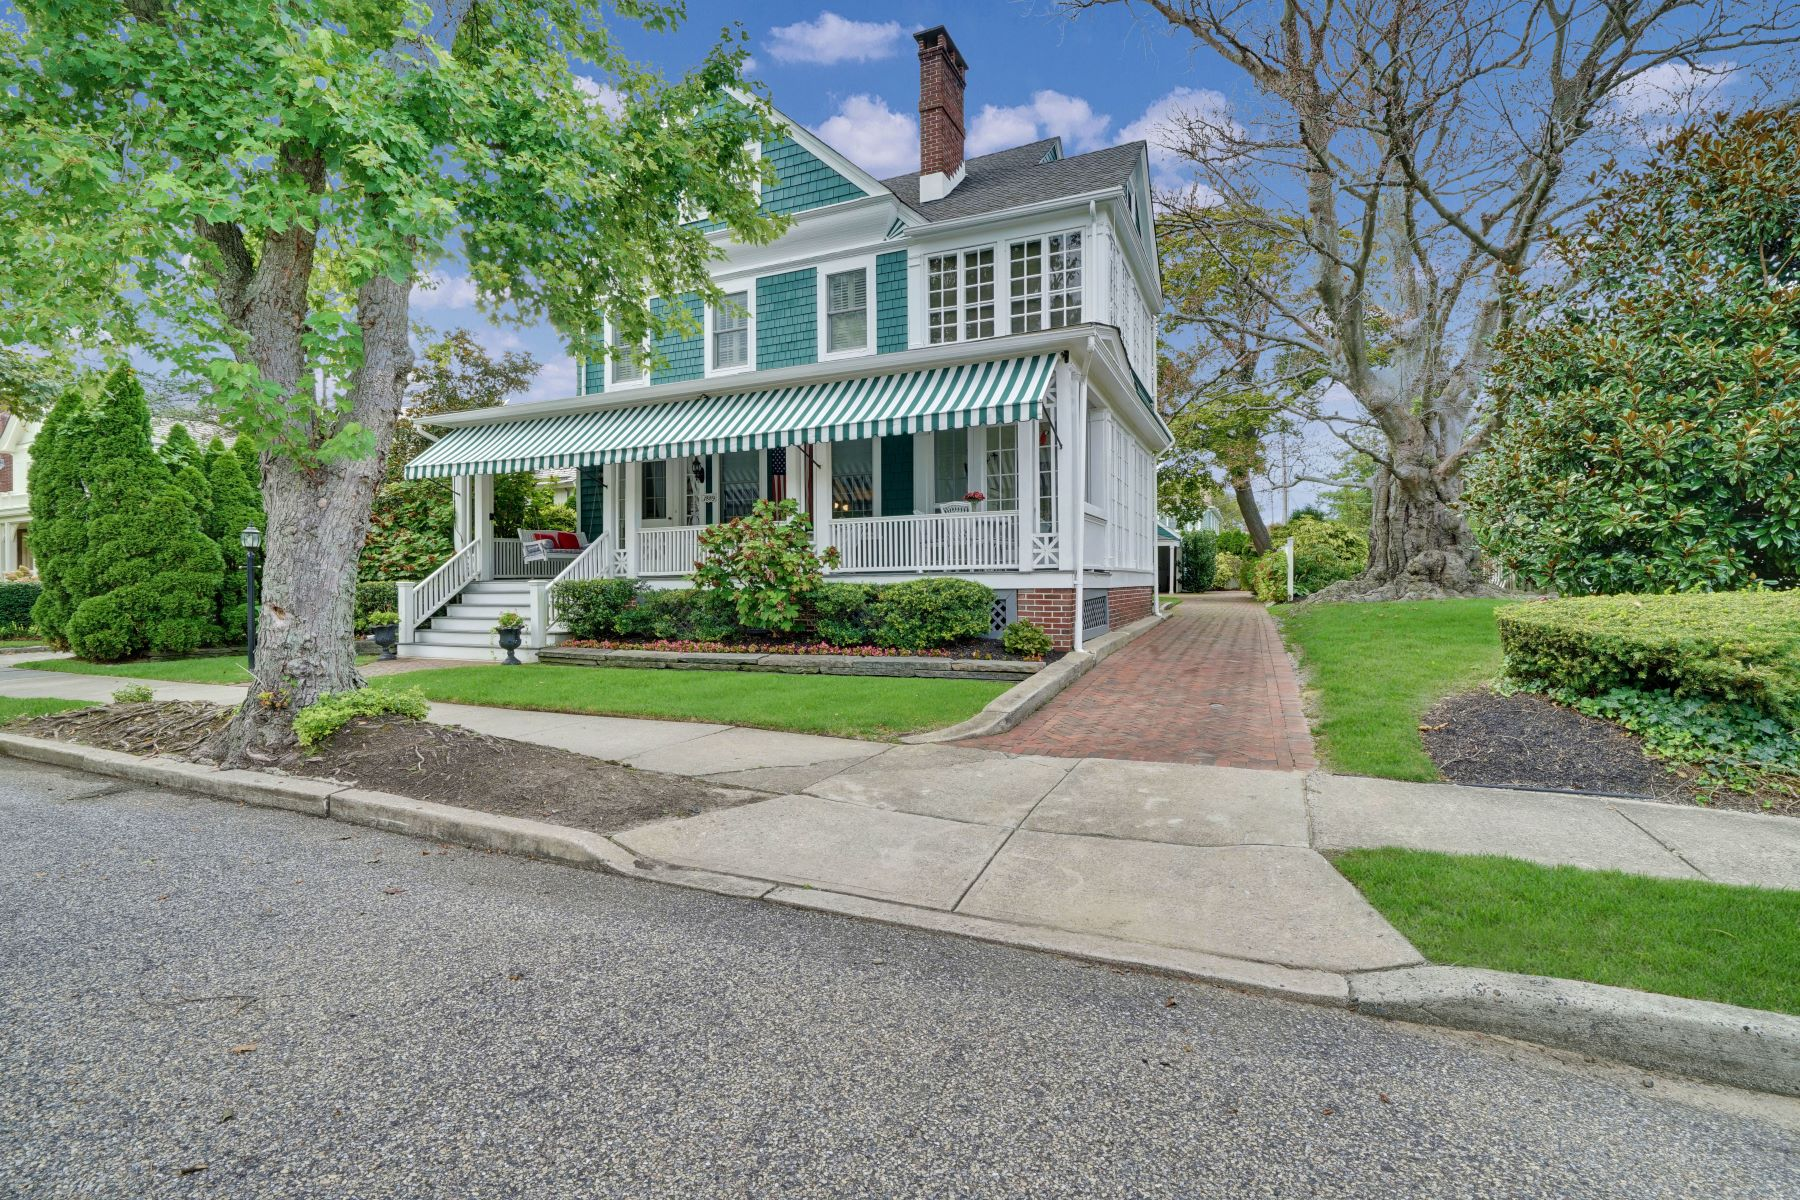 Single Family Homes for Sale at Seashore Colonial 206 Brighton Avenue Spring Lake, New Jersey 07762 United States